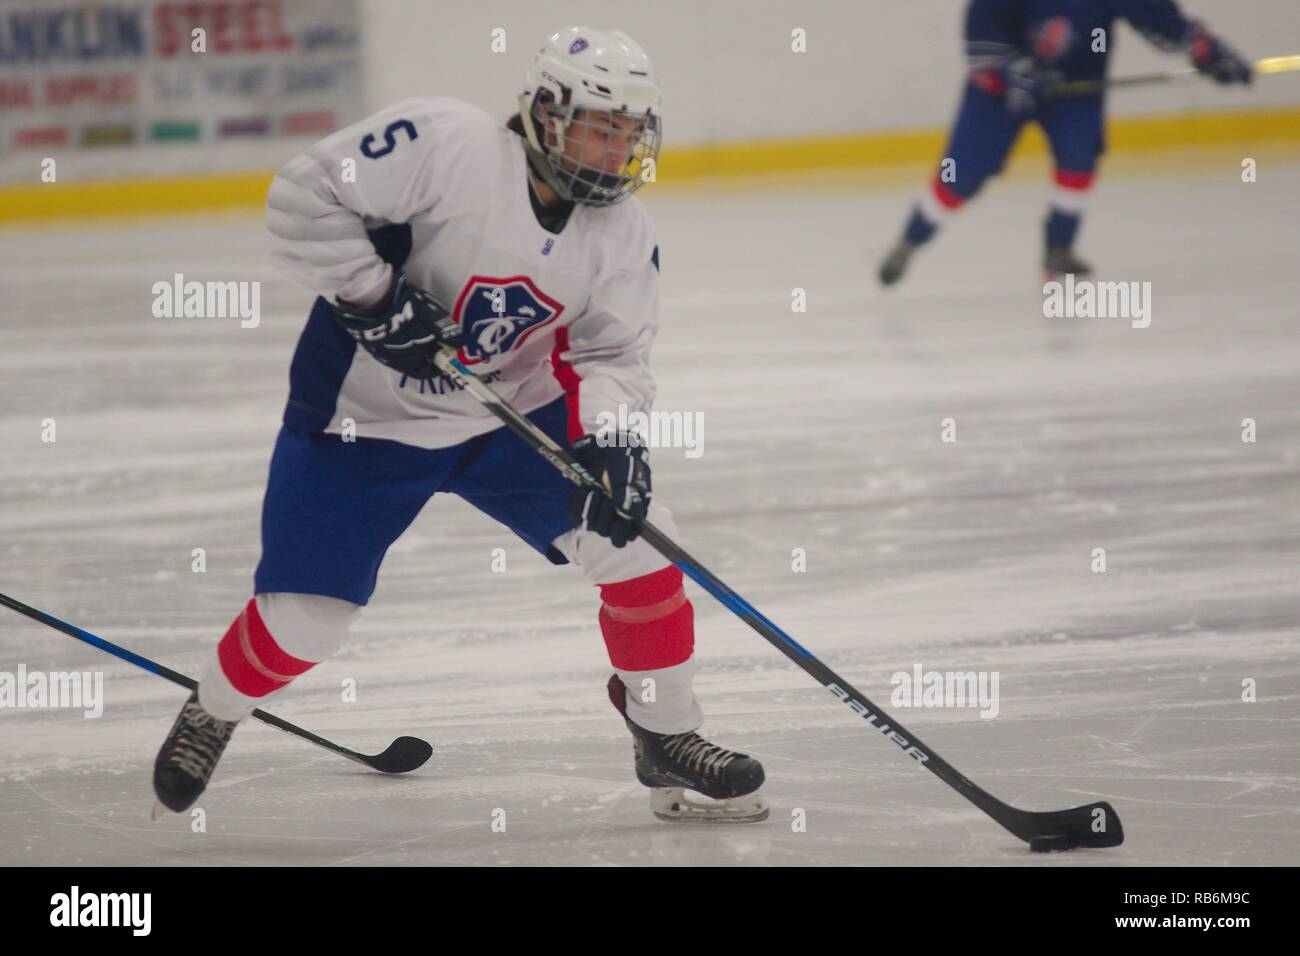 Dumfries, Scotland, 7 January 2019. Eloise Jure playing for France in the 2019 Ice Hockey U18 Women's World Championship, Division 1, Group B, at Dumfries Ice Bowl. Credit: Colin Edwards/Alamy Live News. - Stock Image